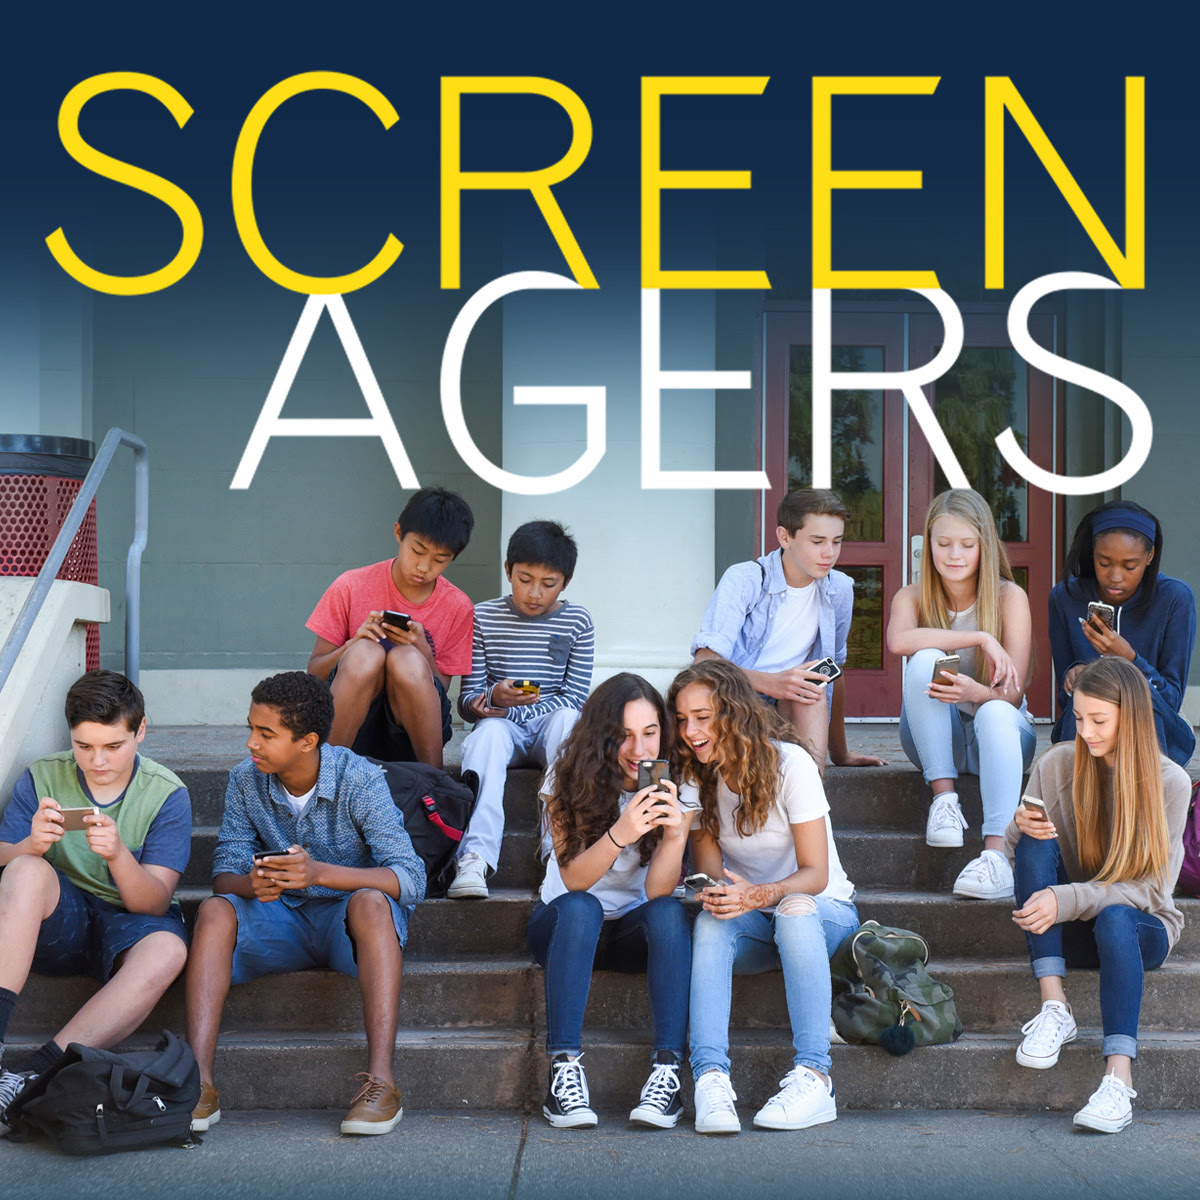 Screenagers Film Presented By St. John's Lutheran/Emanuel Lutheran/Lutheran Special Education Ministries